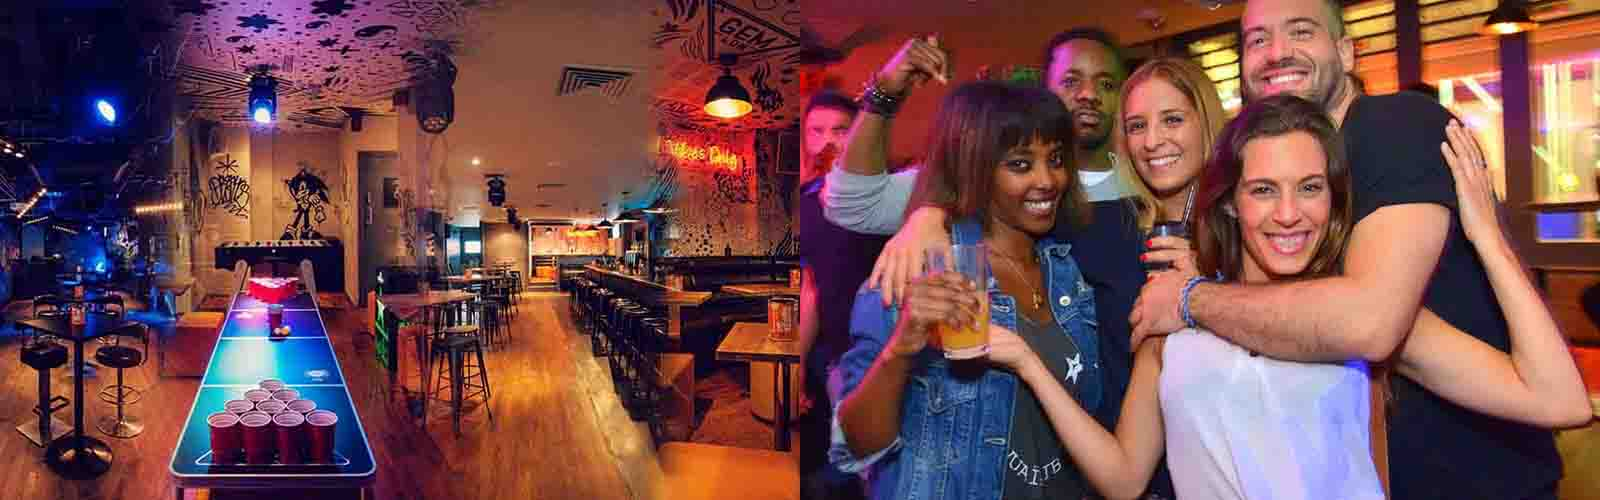 Grab your best friends and enjoy some dancing and drinks at Gem Bar.